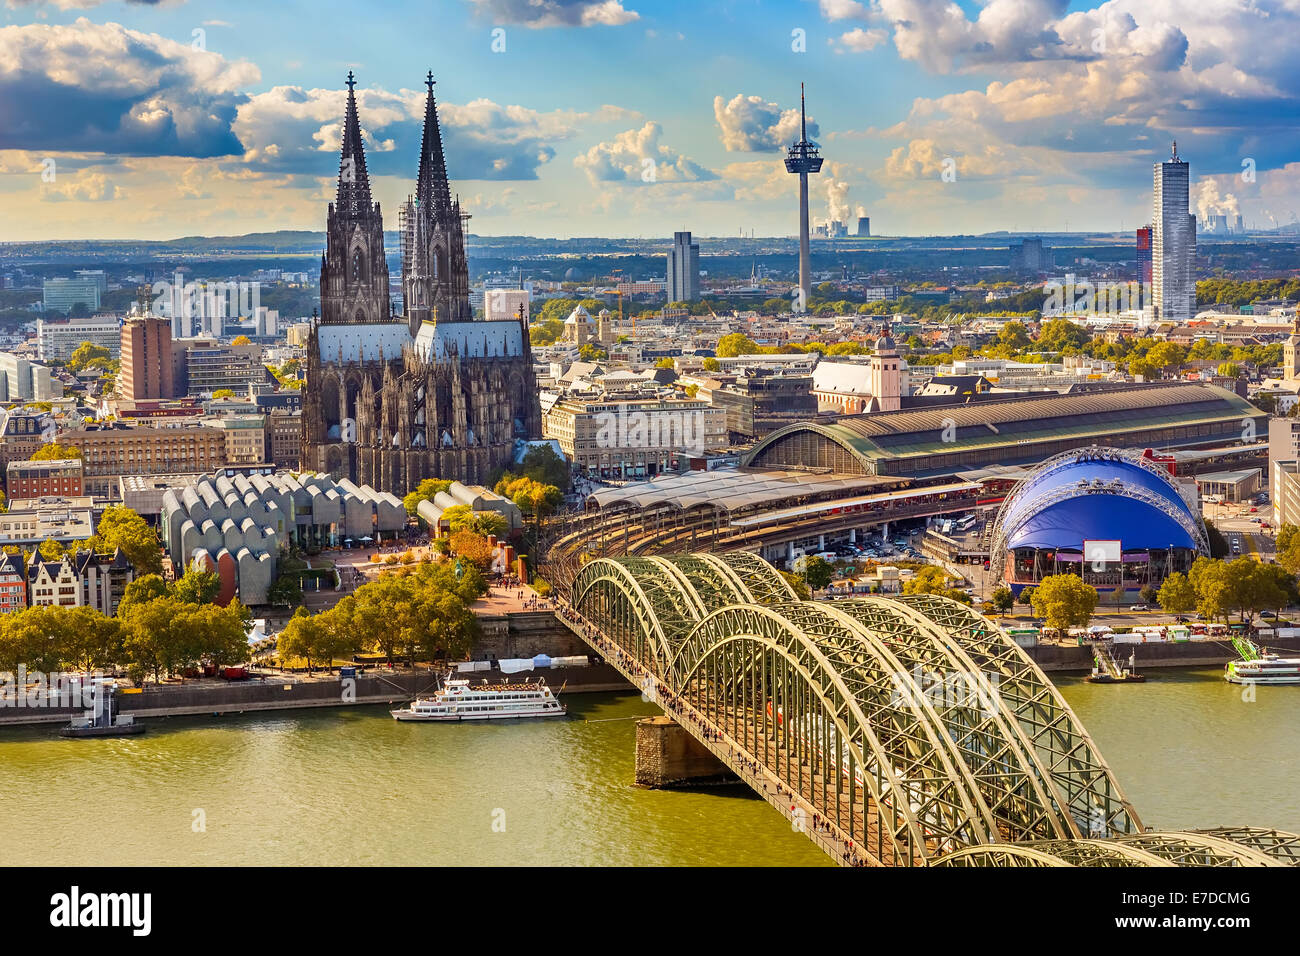 Aerial view of Cologne - Stock Image